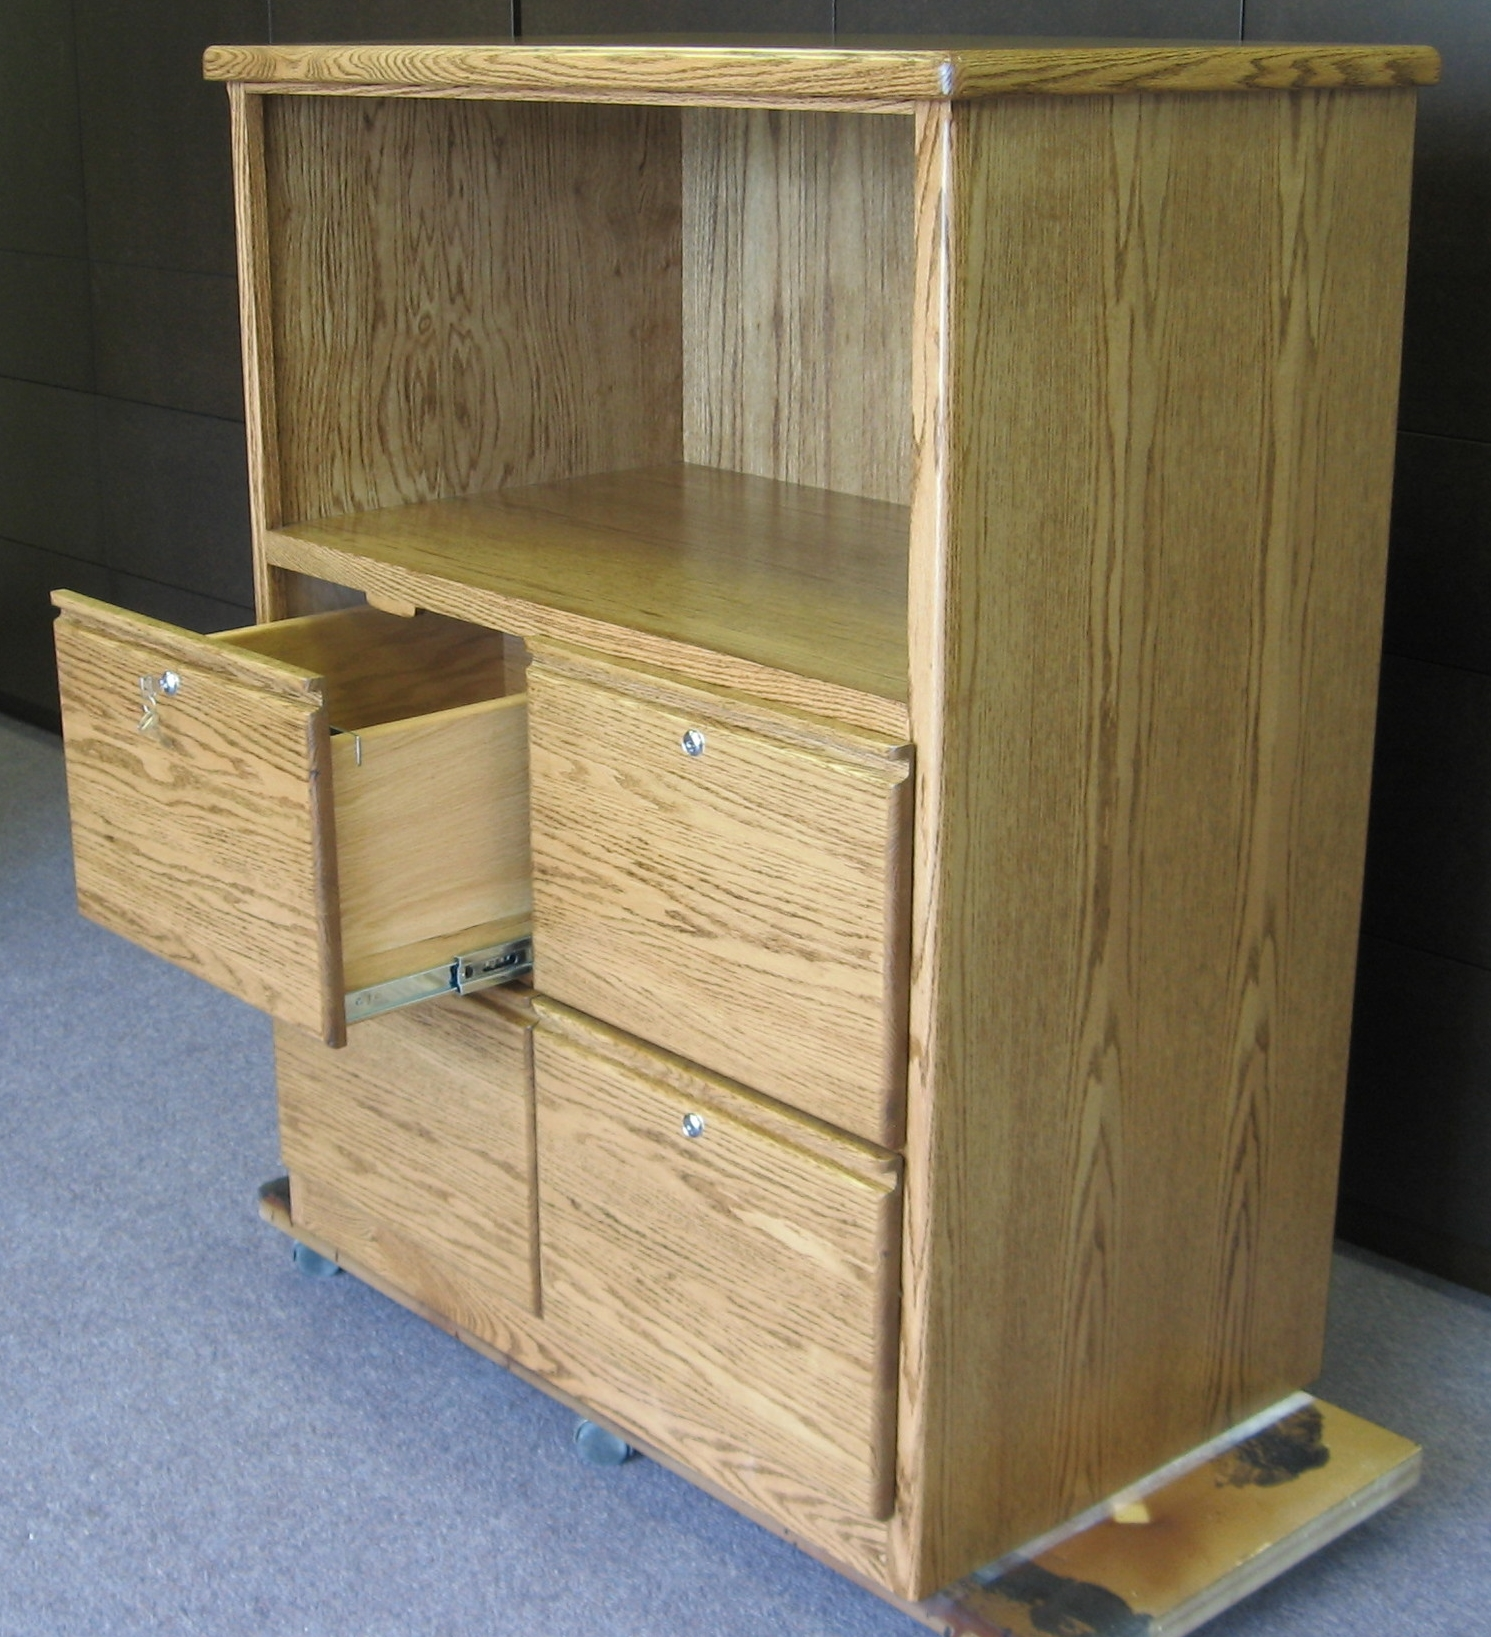 oak-file-drawer-cabinet-with-printer-shelf.JPG